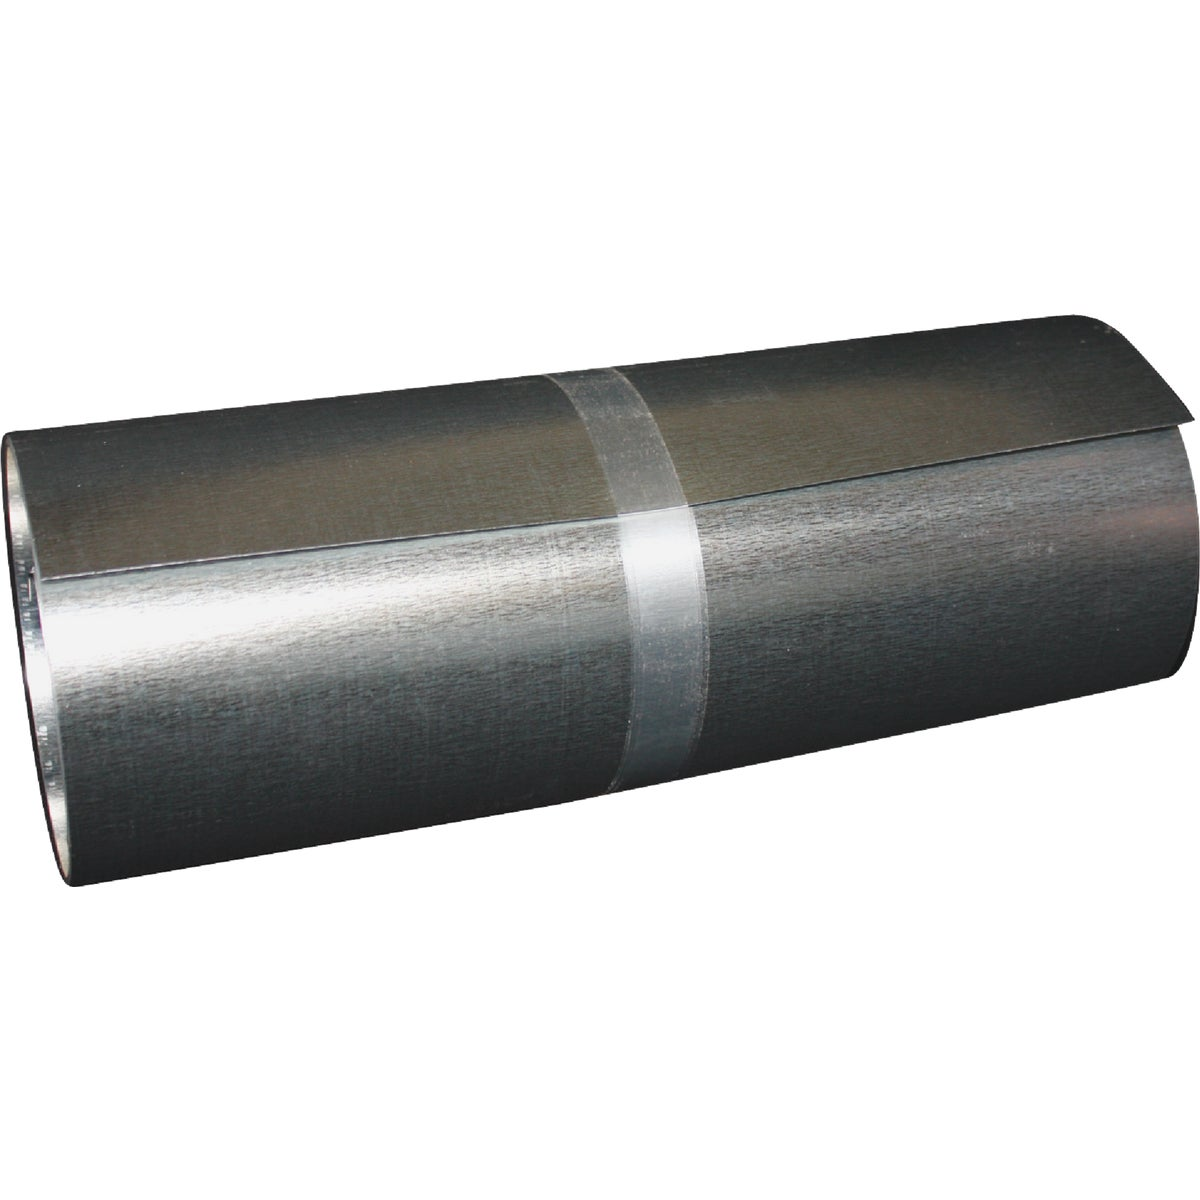 "14""X25' GALV ROLL VALLEY - 30055-GV10 by Klauer Mfg Co"